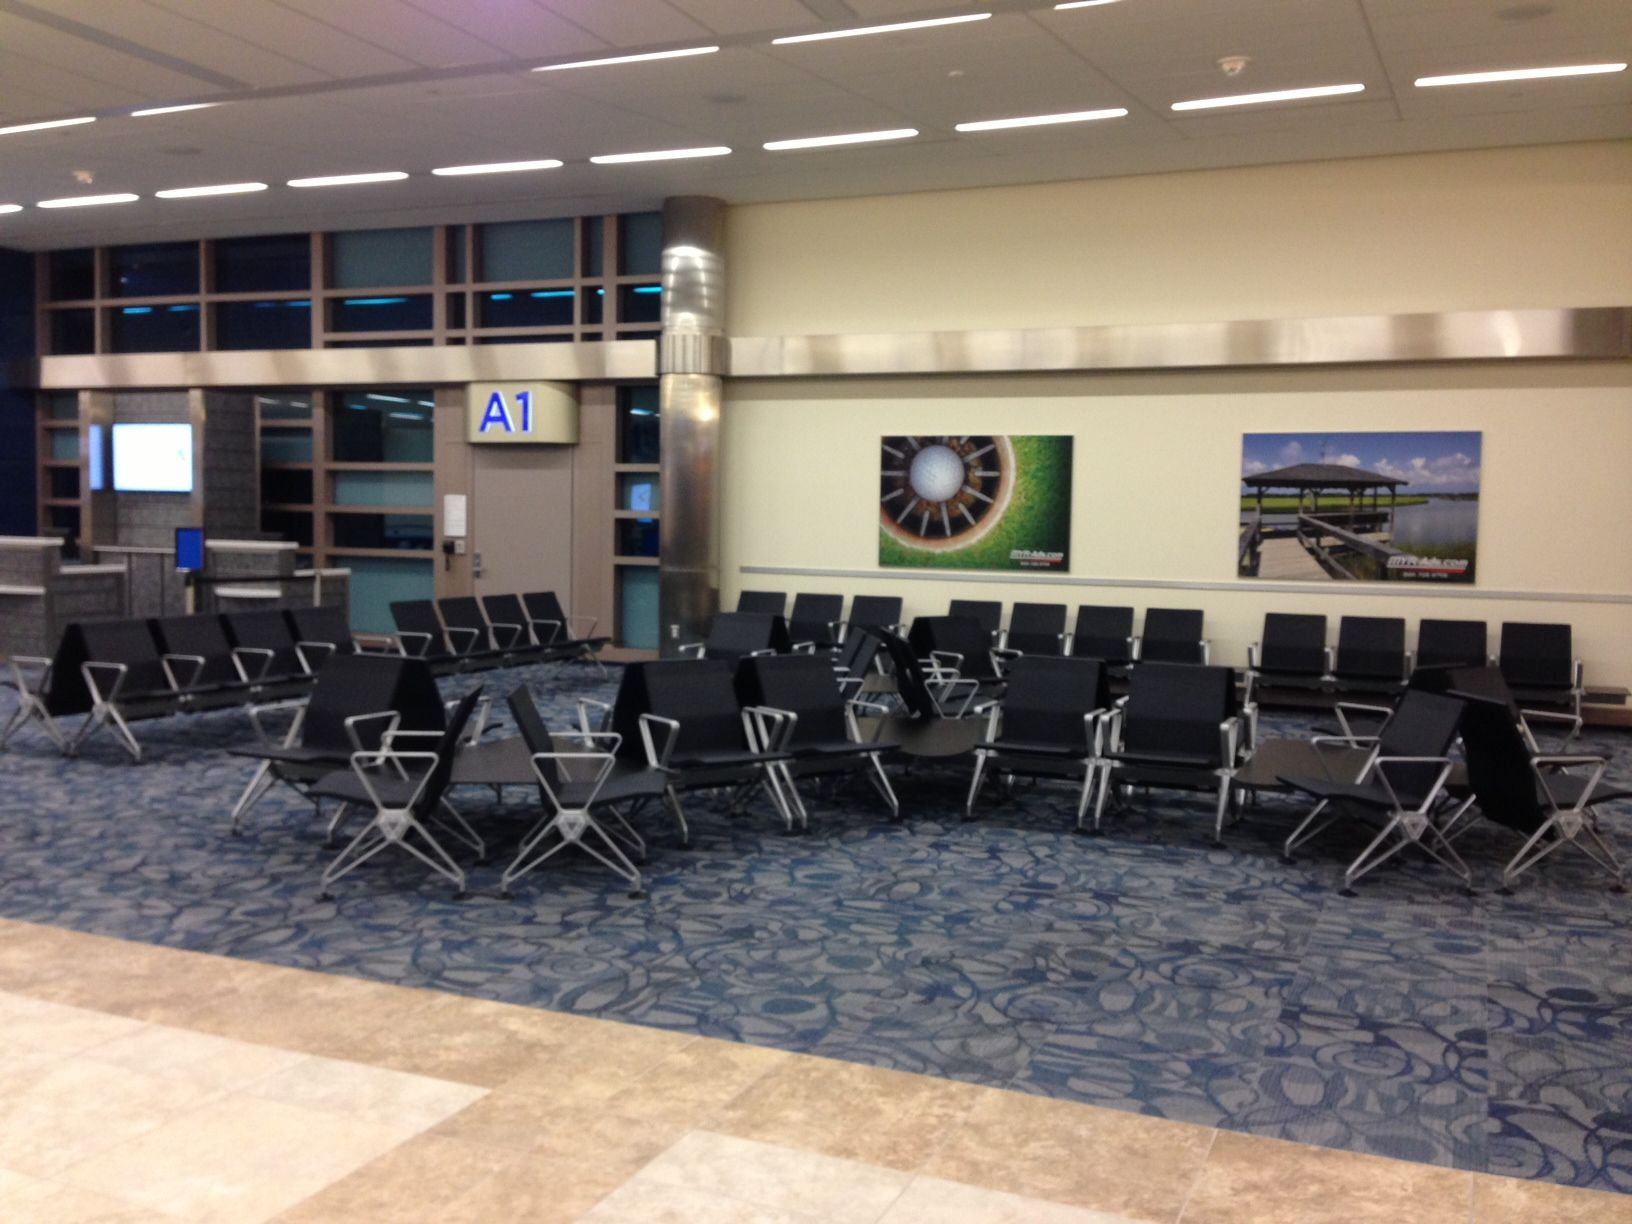 Myrtle Beach Airport  Furniture   Herald Office Solutions Columbia, SC  Charleston, SC Dillon, SC Myrtle Beach, SC Cheraw, SC Sumter, SC Greenwood,  ...